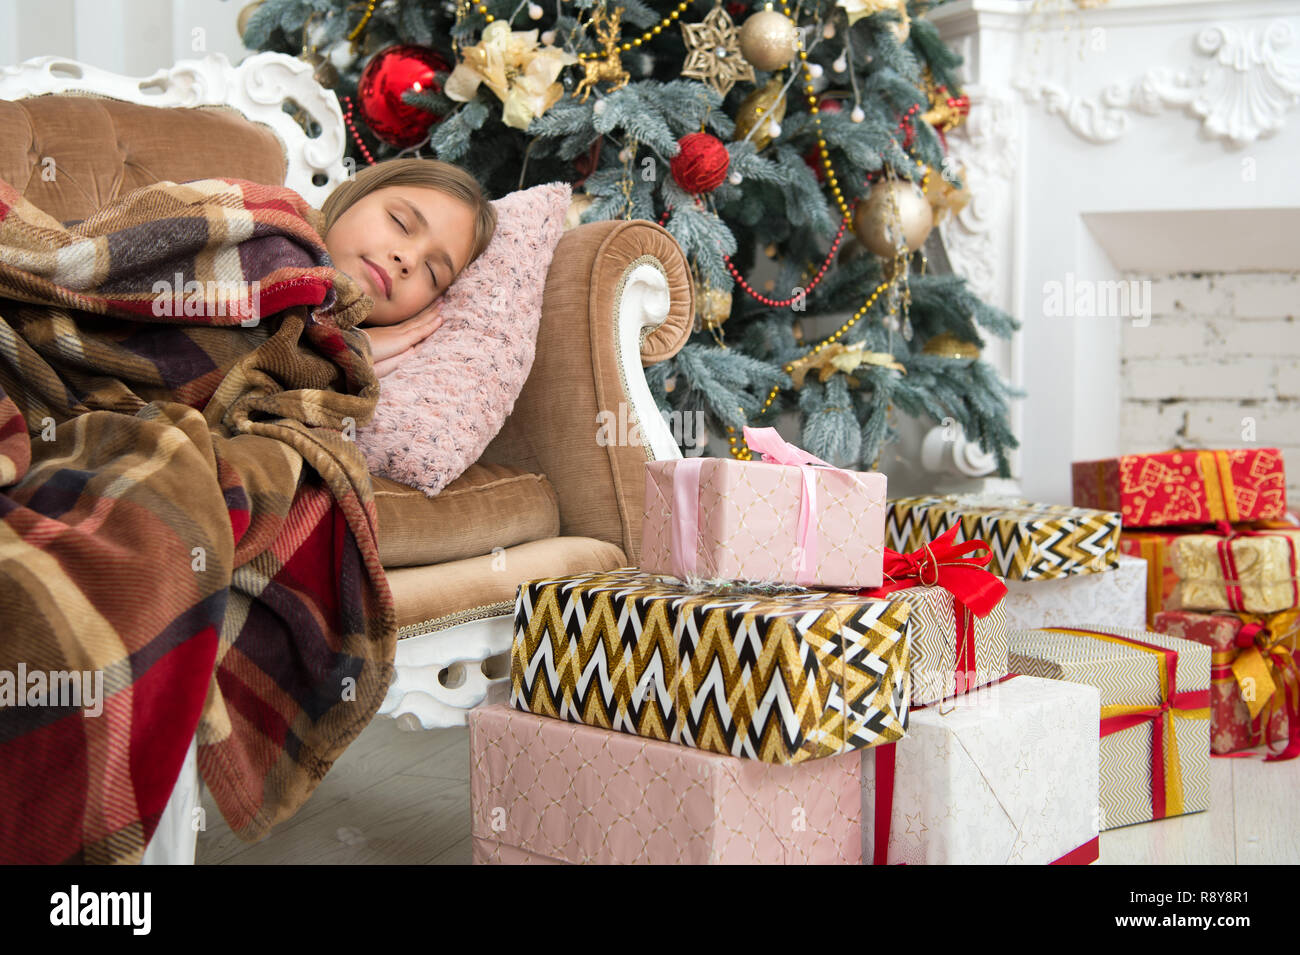 Christmas Thoughts.Child Enjoy The Holiday Happy New Year Winter Xmas Online